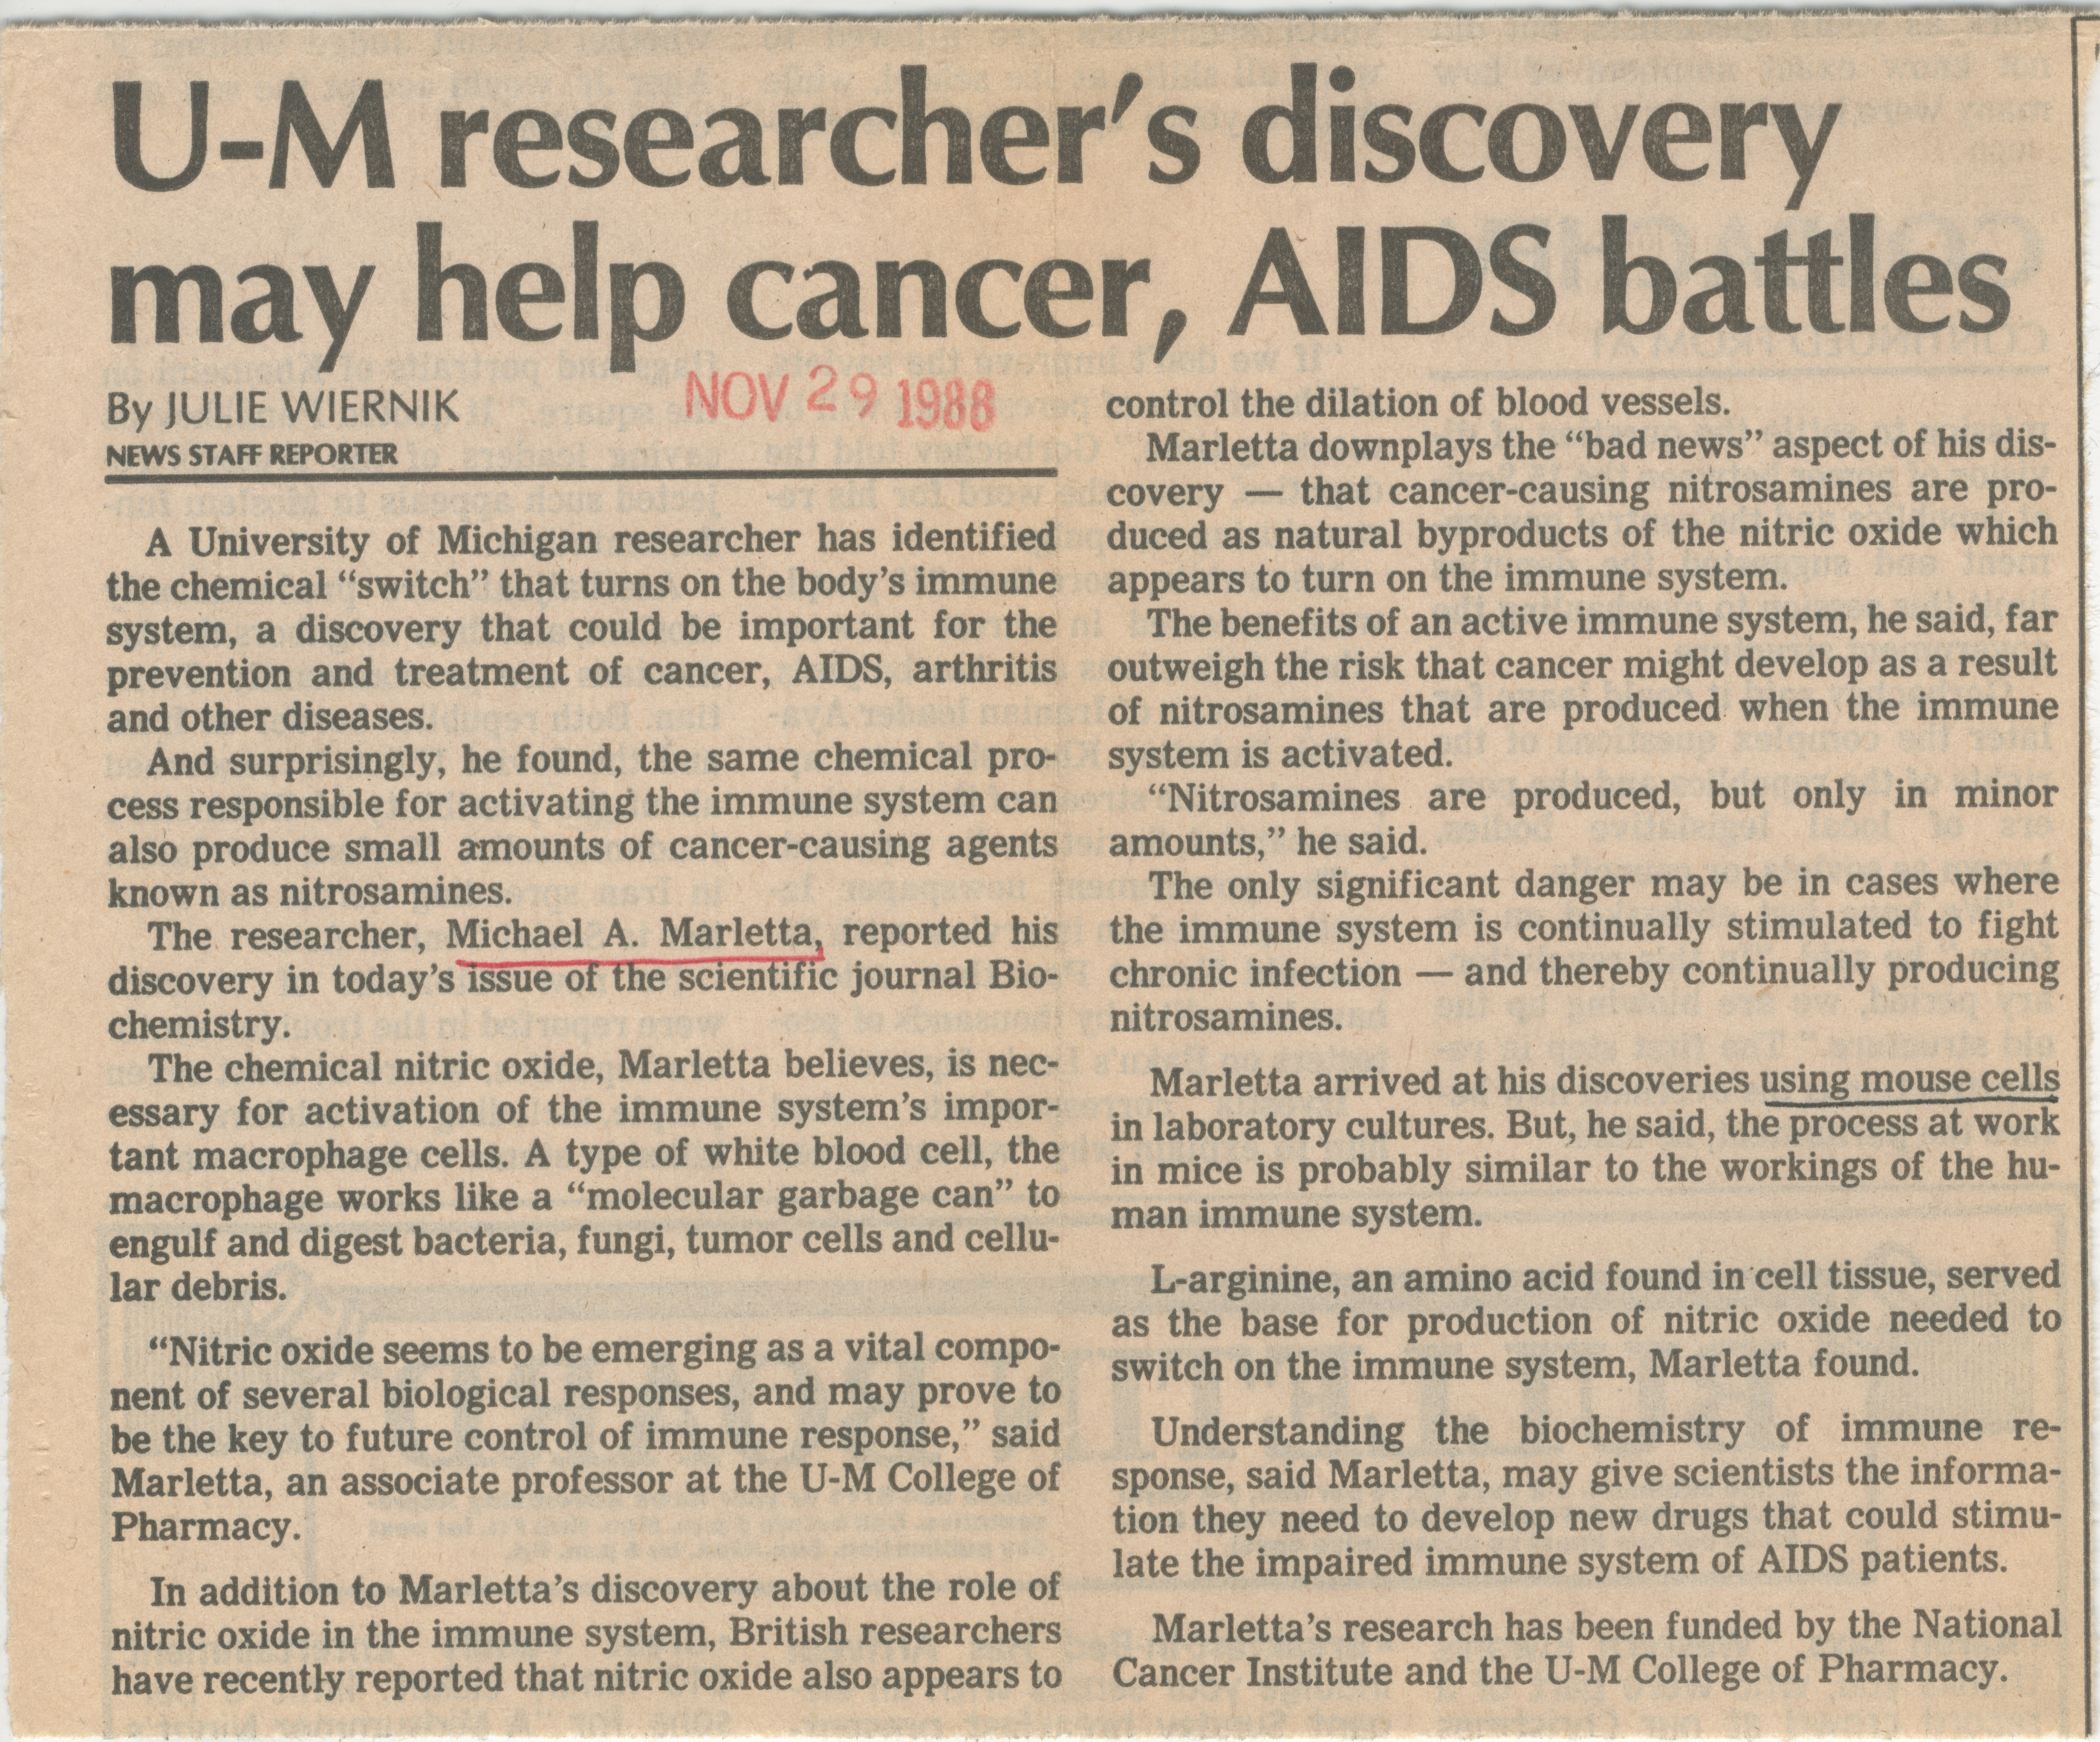 U-M Researcher's Discovery May Help, Cancer, AIDS battles  image